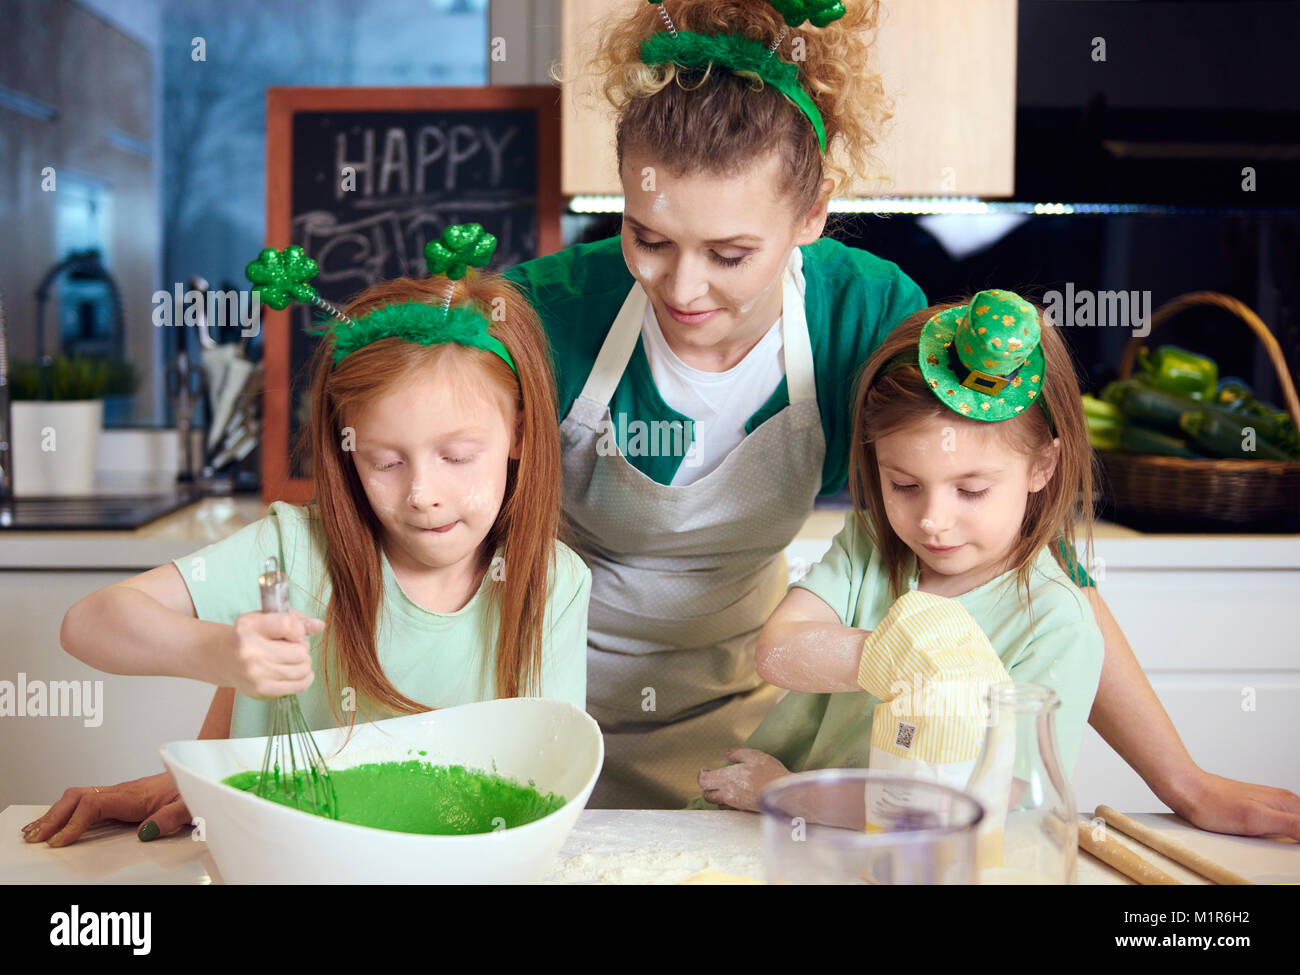 Children mixing fondant icing under mother's supervision - Stock Image